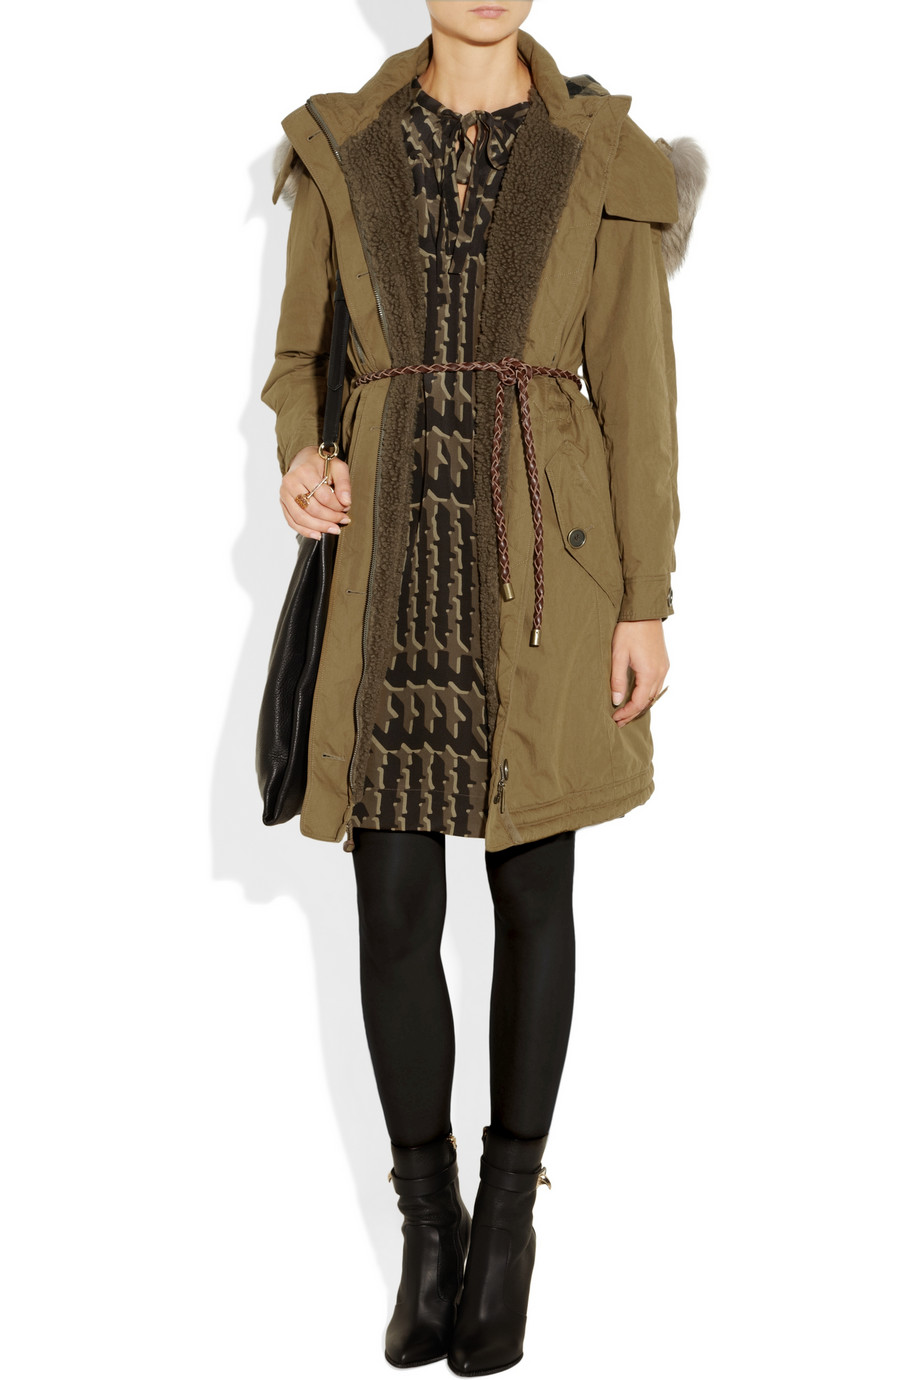 burberry parka 2013 winter fashion What To Wear This Winter? Is Parka The It Coat Of 2012/2013?